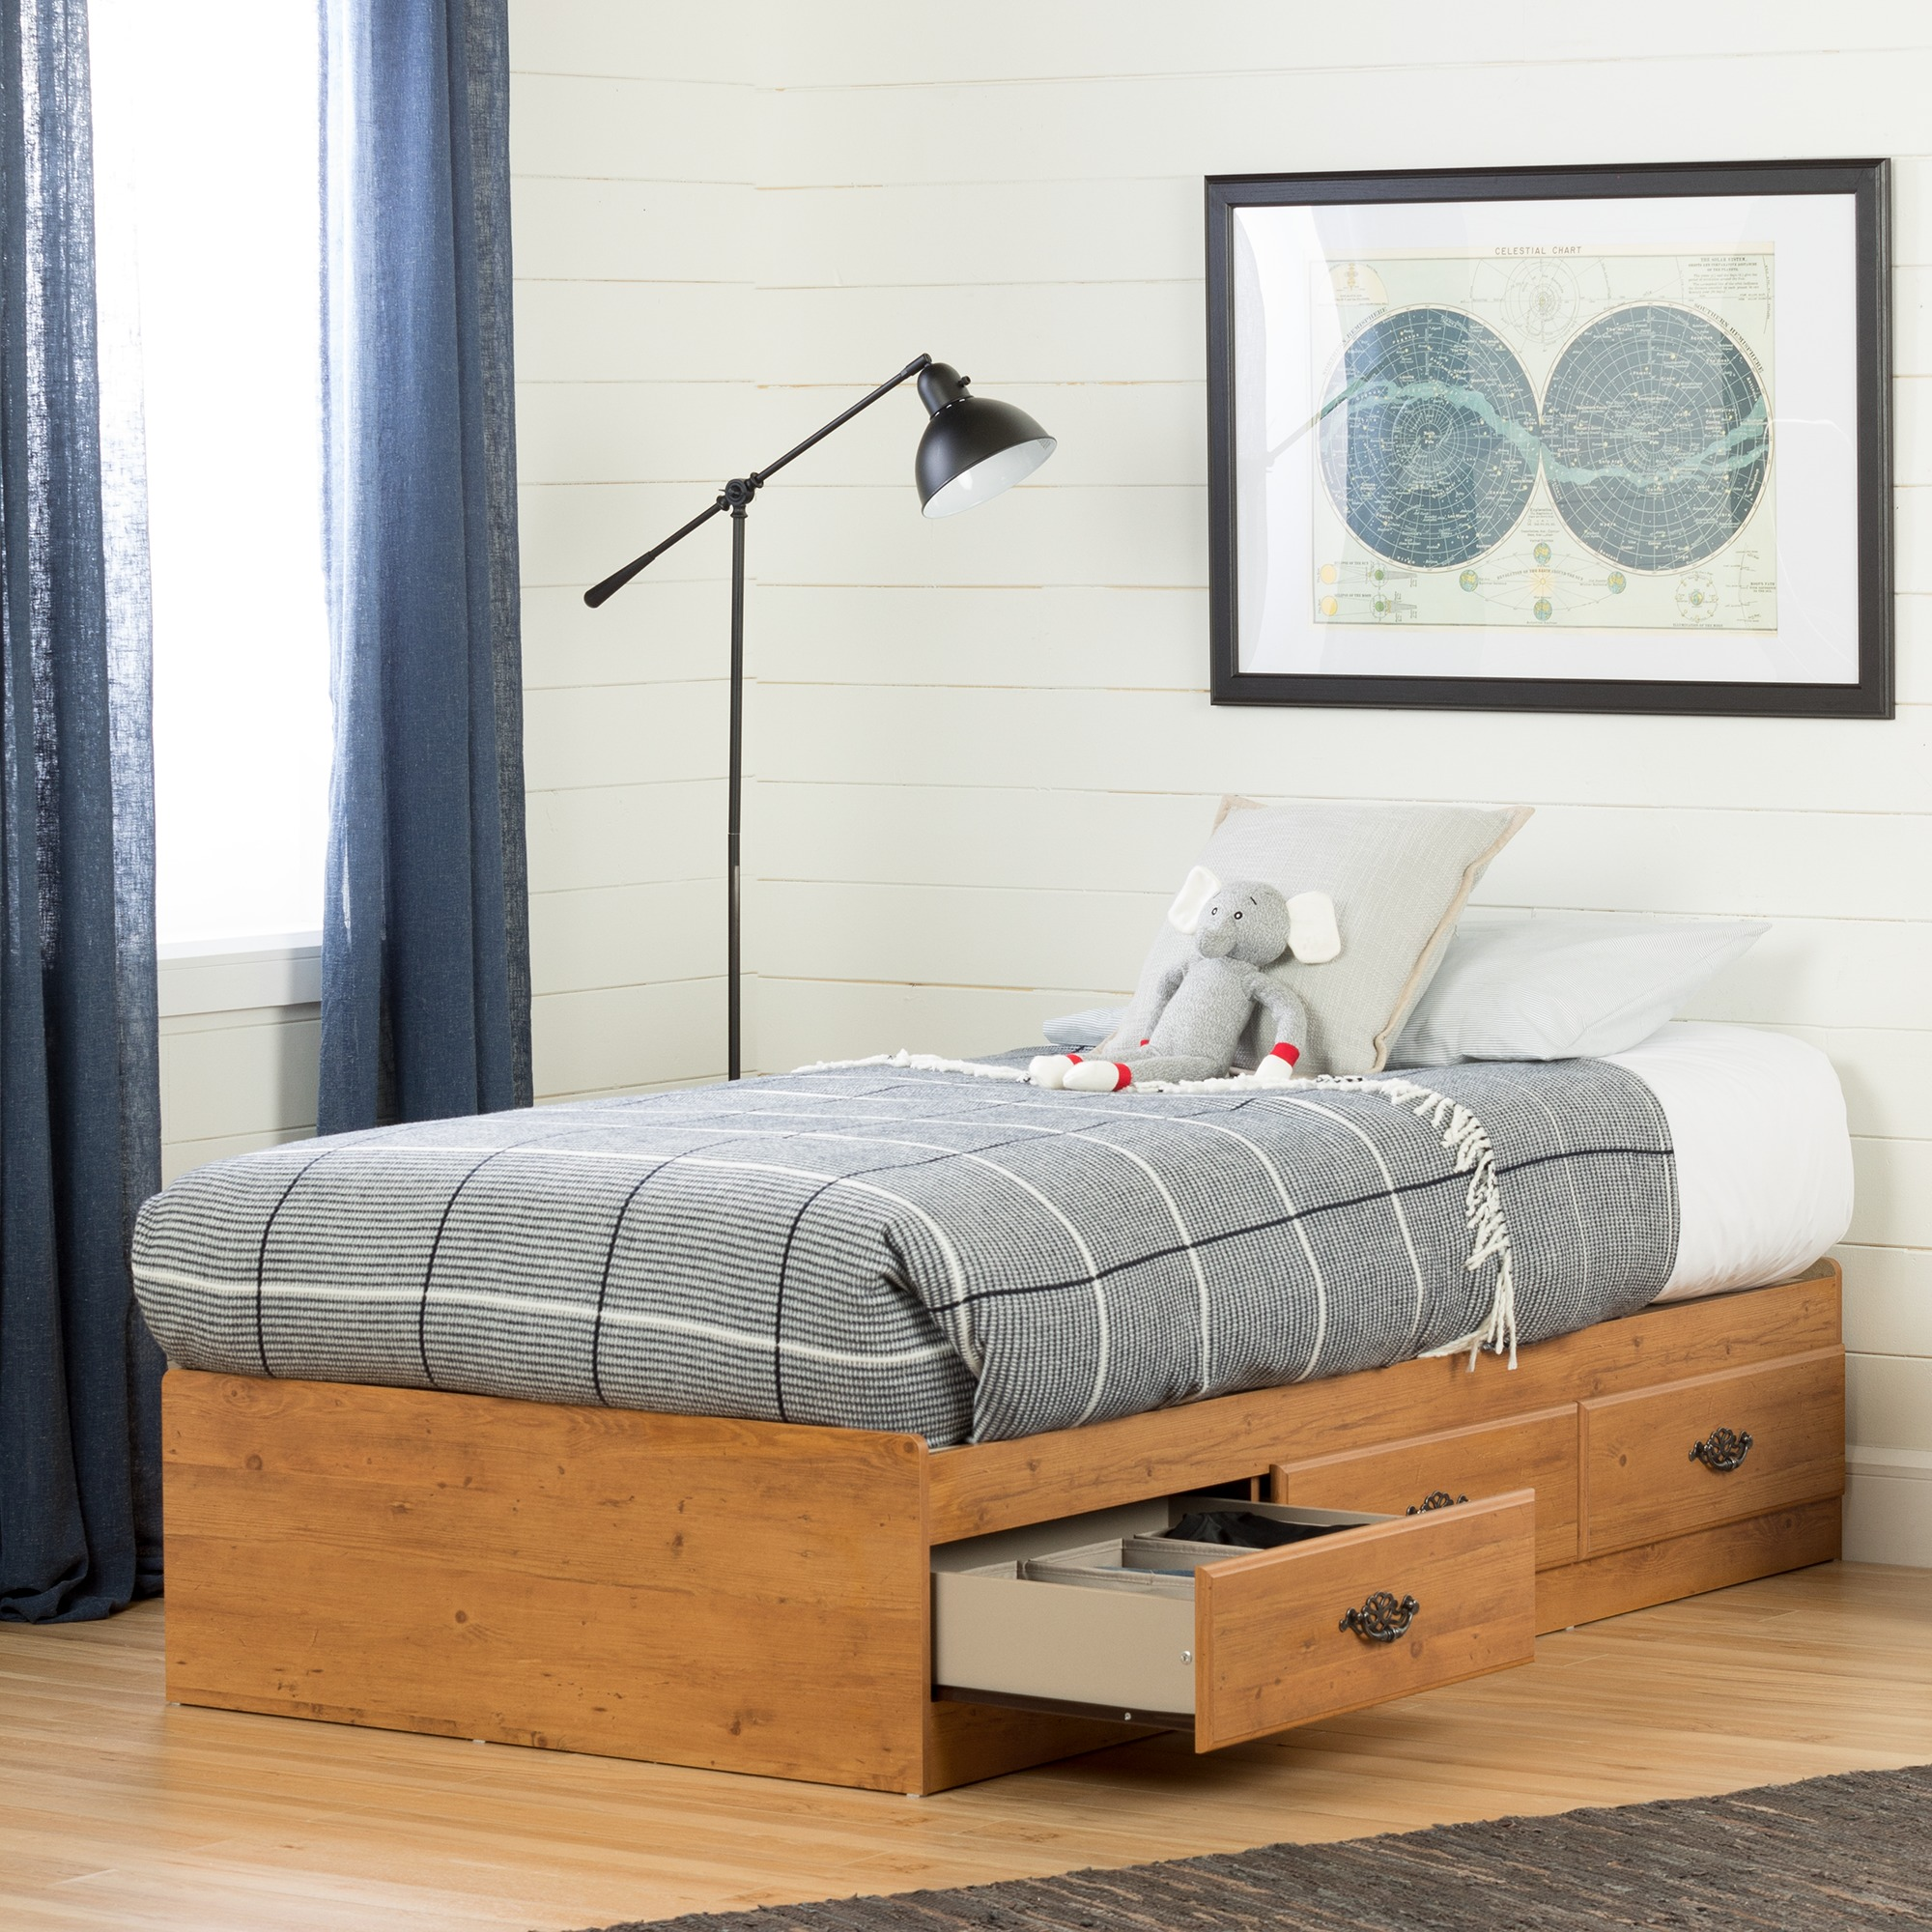 South Shore Prairie Twin Storage Bed (39'') with 3 Drawers, Country Pine